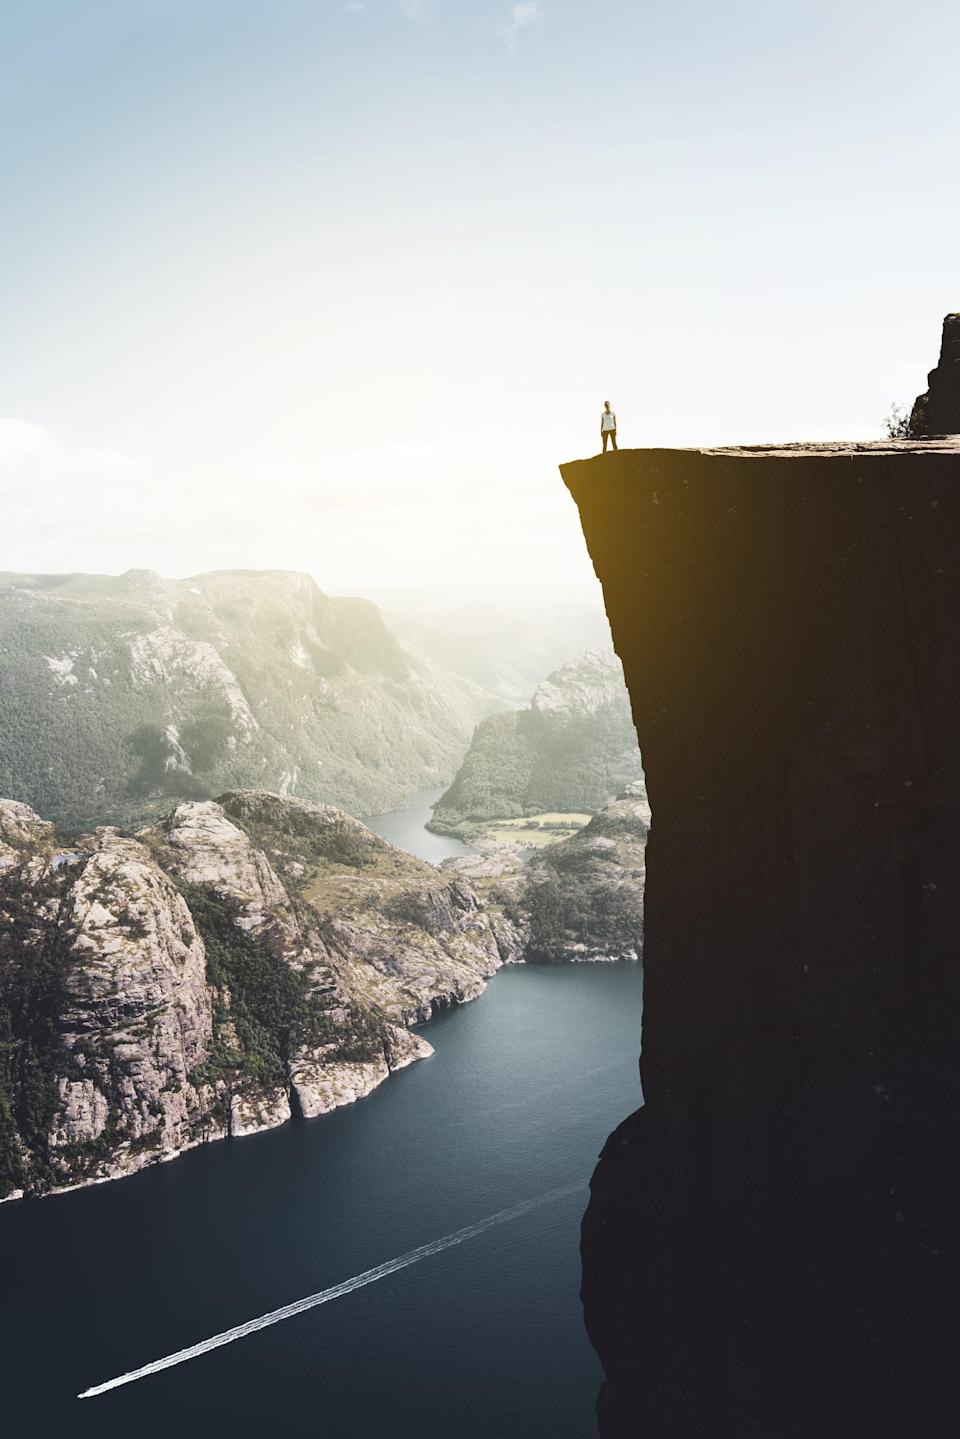 <p>Preikestolen, or the Pulpit Rock, is a huge destination point for hikers, adventurous travelers, and anyone else willing to brave the heights for some amazing views. </p>